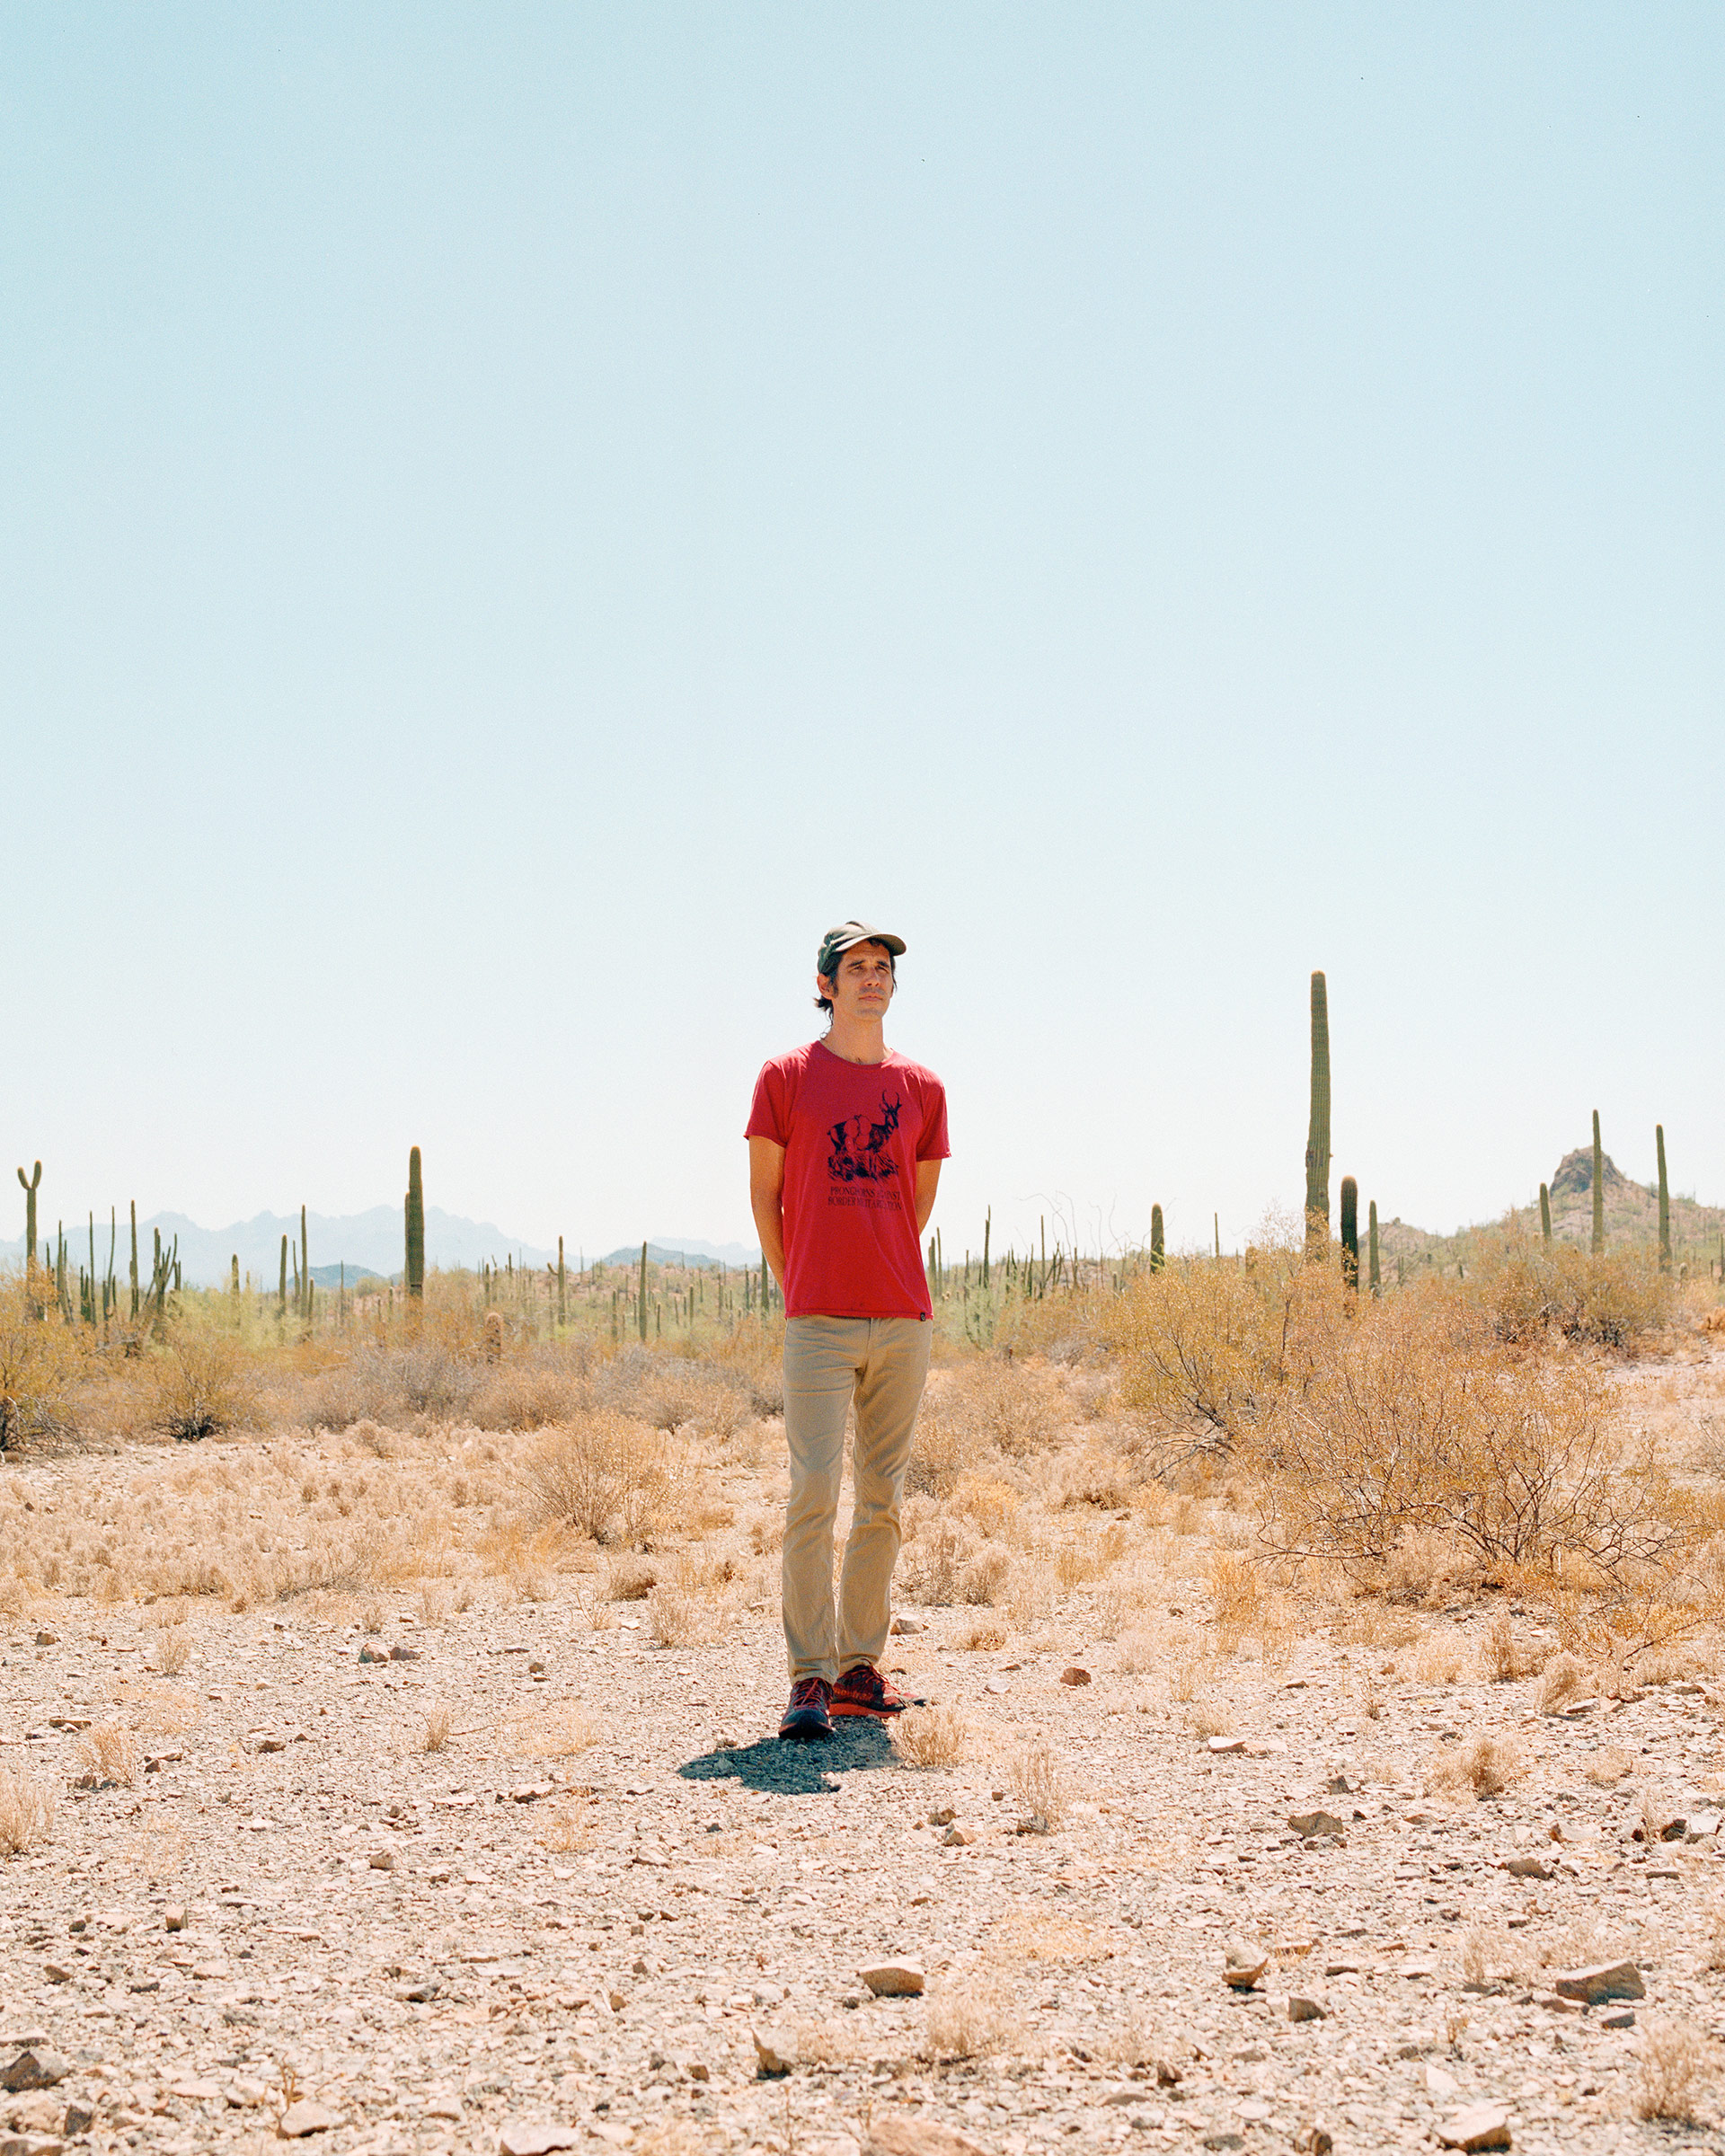 Scott Warren in the desert on the outskirts of Ajo, Ariz., on Sept 17.